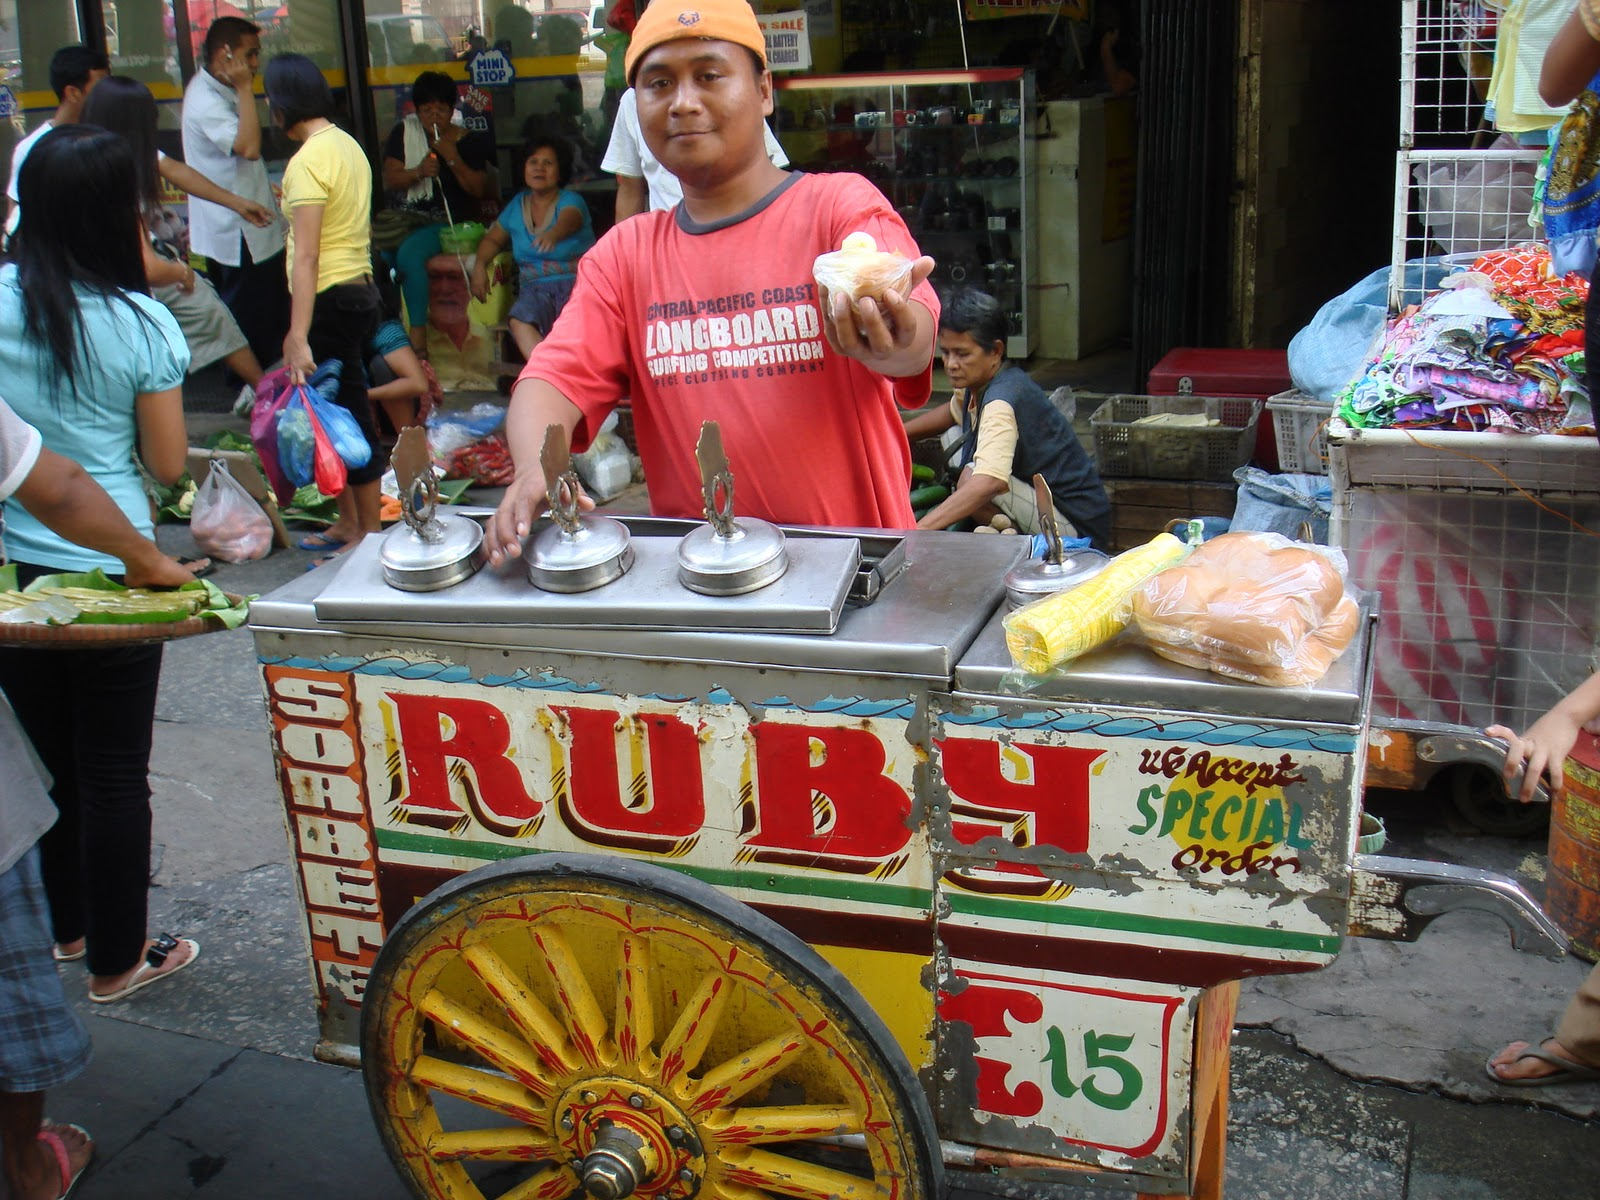 street foods in the philippines Cooked with ginger and sometimes garnished with a hard-boiled egg, toasted garlic and green onions, this filipino food is sold in street-side stalls no trip to the philippines would be complete without sampling its famous balut vendors peddling these eggs on the street chant baluuuuut.